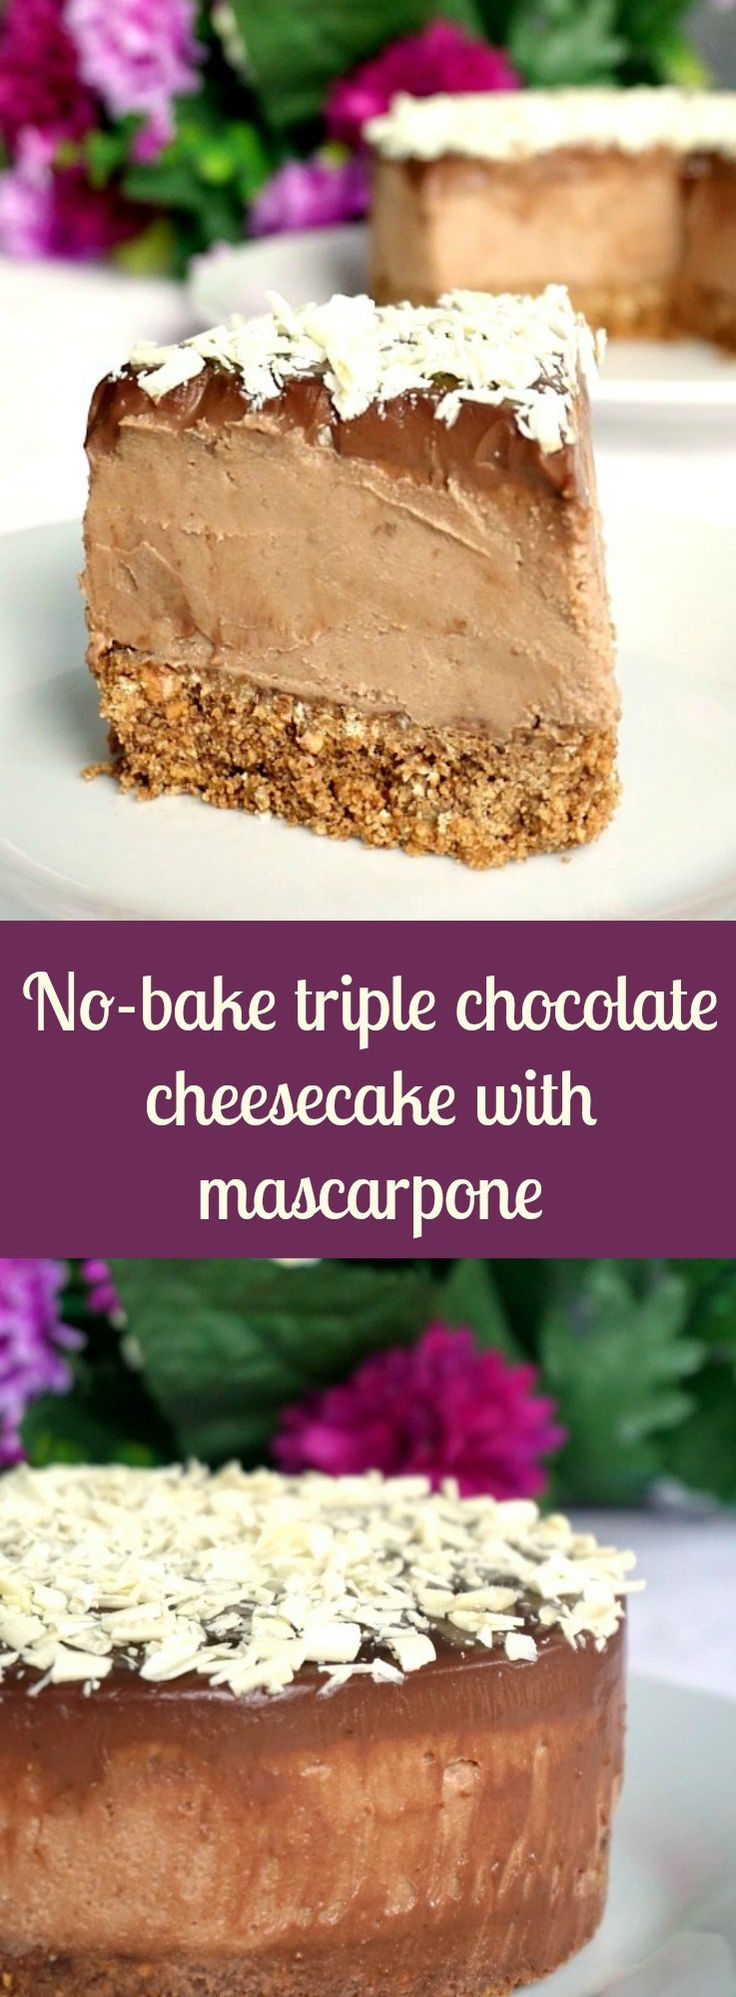 No-bake triple chocolate cheesecake with mascarpone, so rich and velvety, the ideal dessert for Valentine's Day